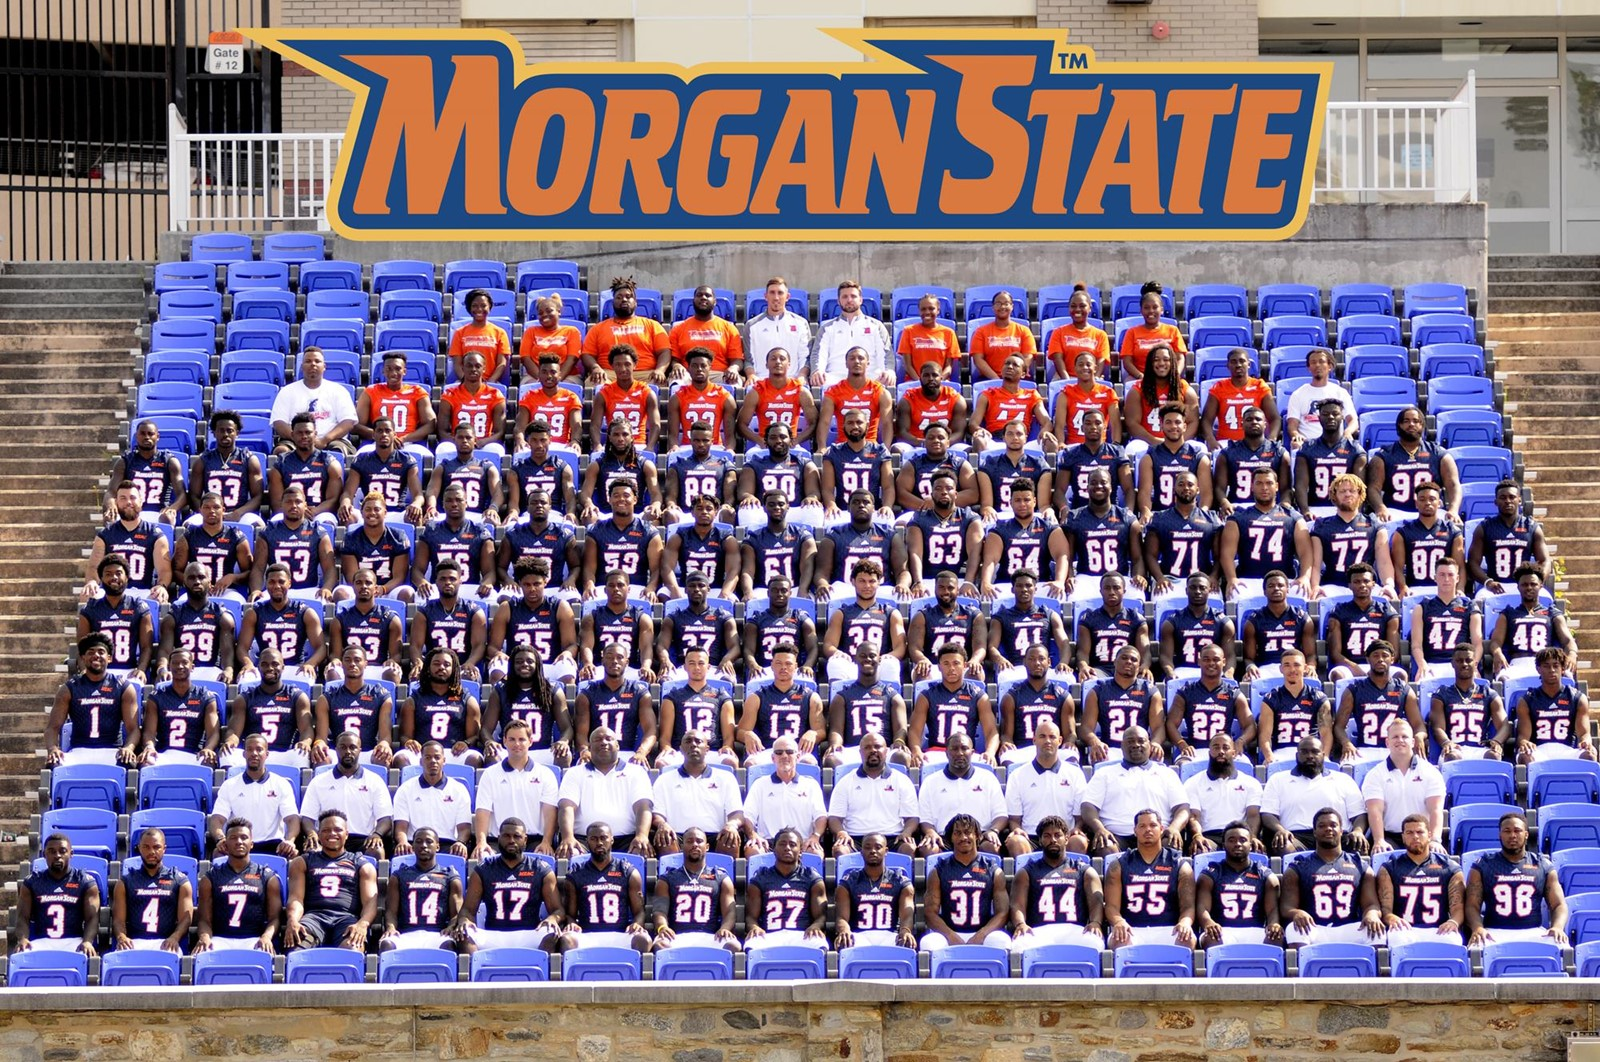 2017 0 Roster Morgan State University Athletics